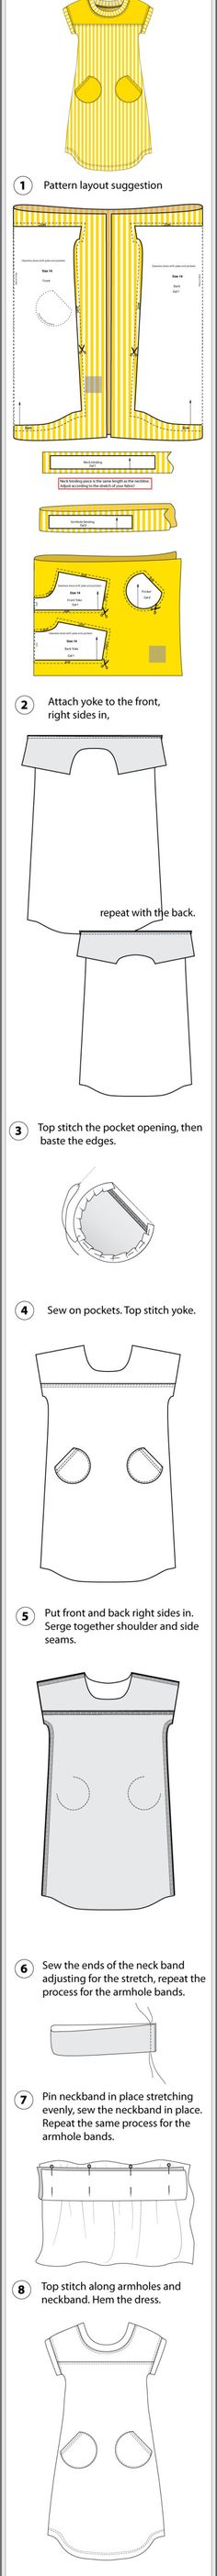 T-Shirt Dress Step-by-Step Sewing Instructions